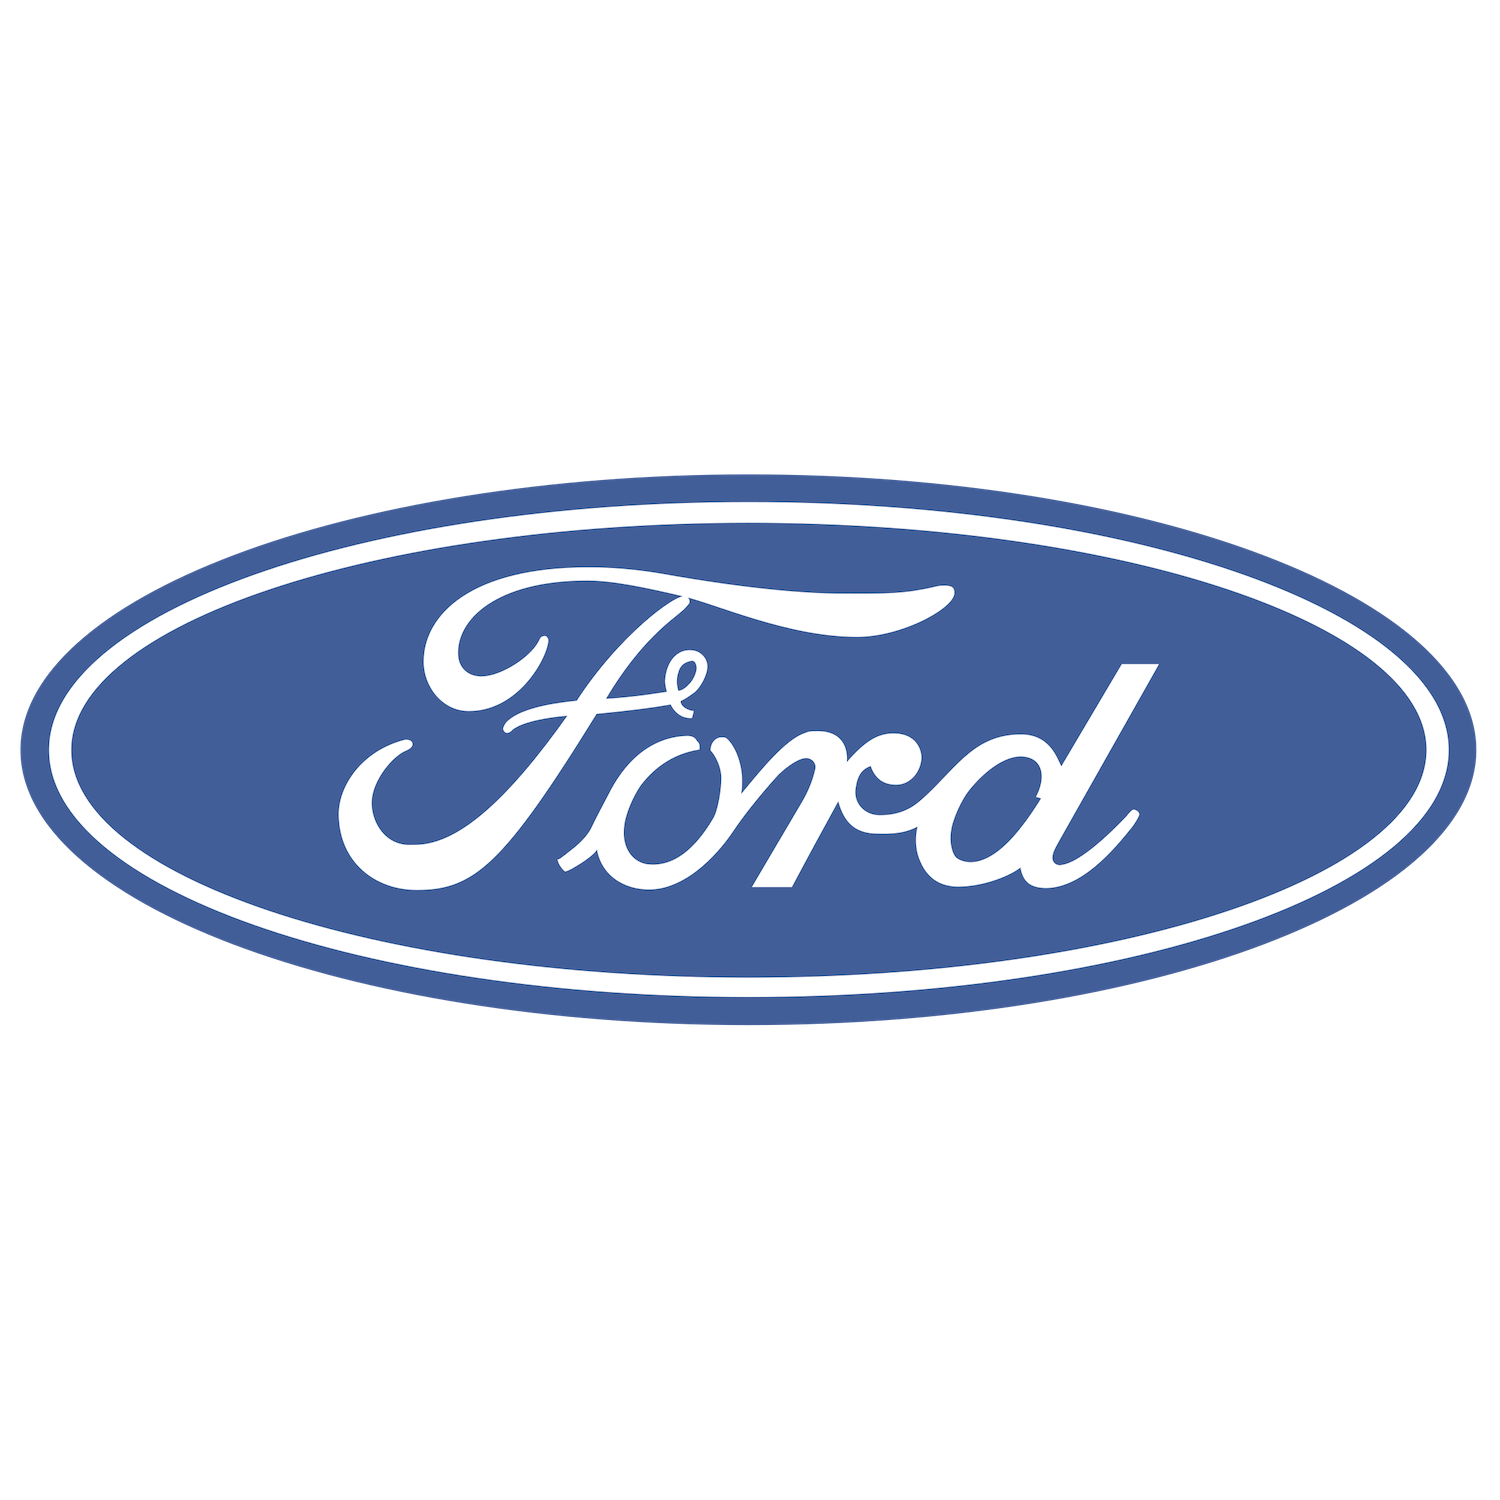 ford-1-logo-png-transparent.png